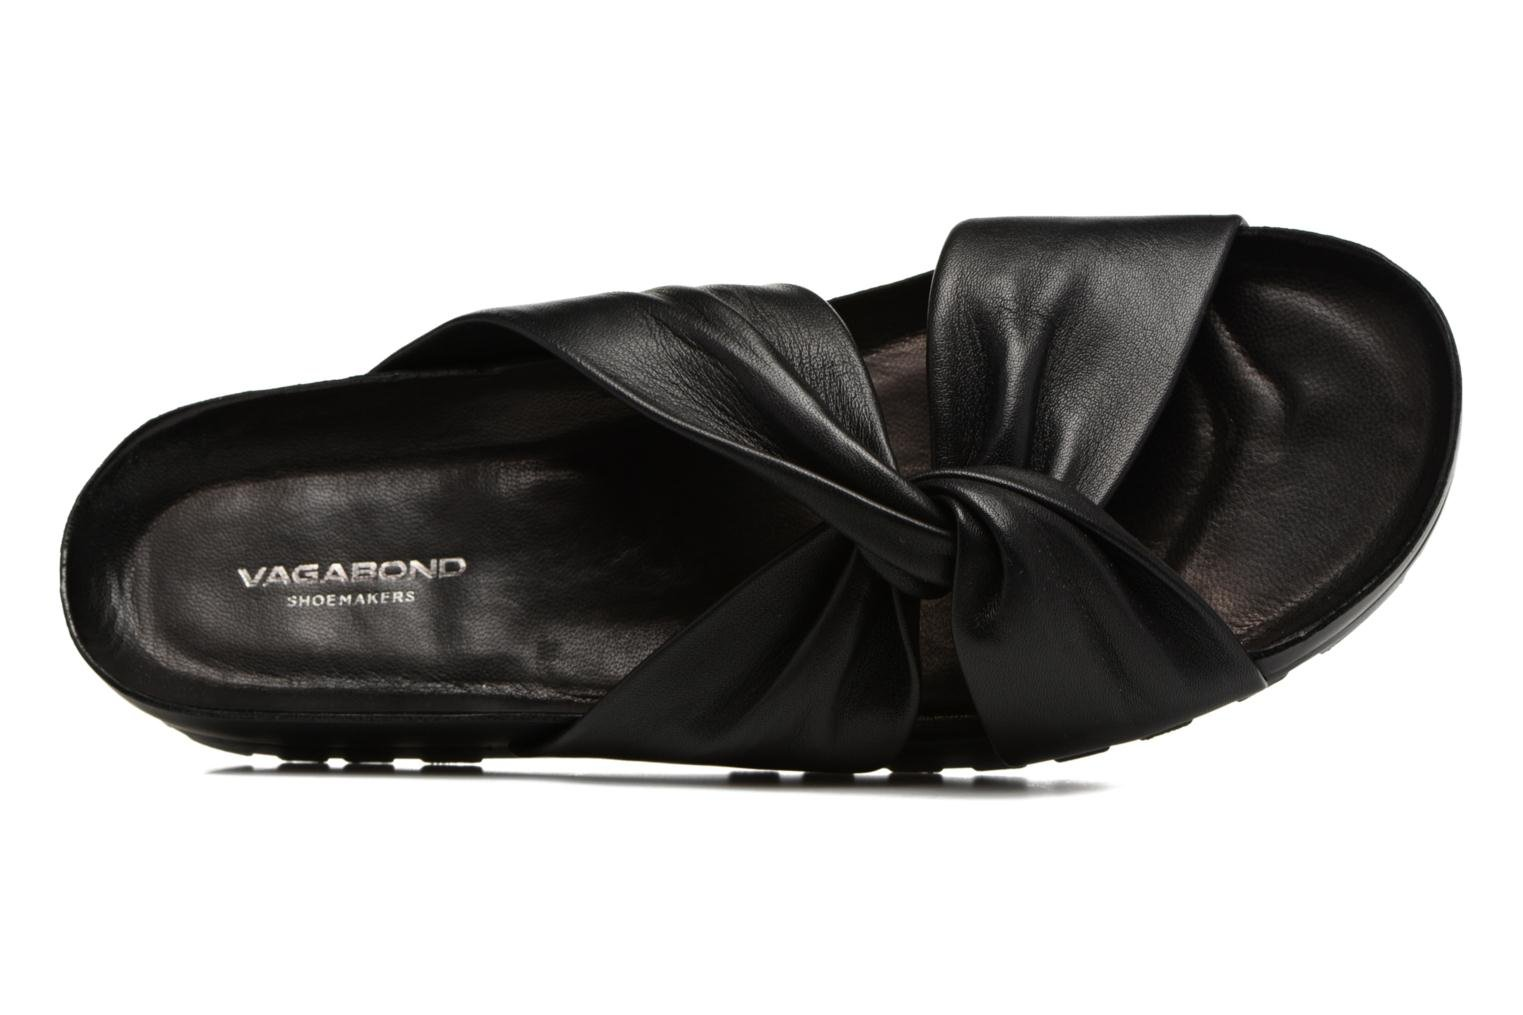 Vagabond Black Shoemakers Leather Erie 101 4332 8wUrA8qX